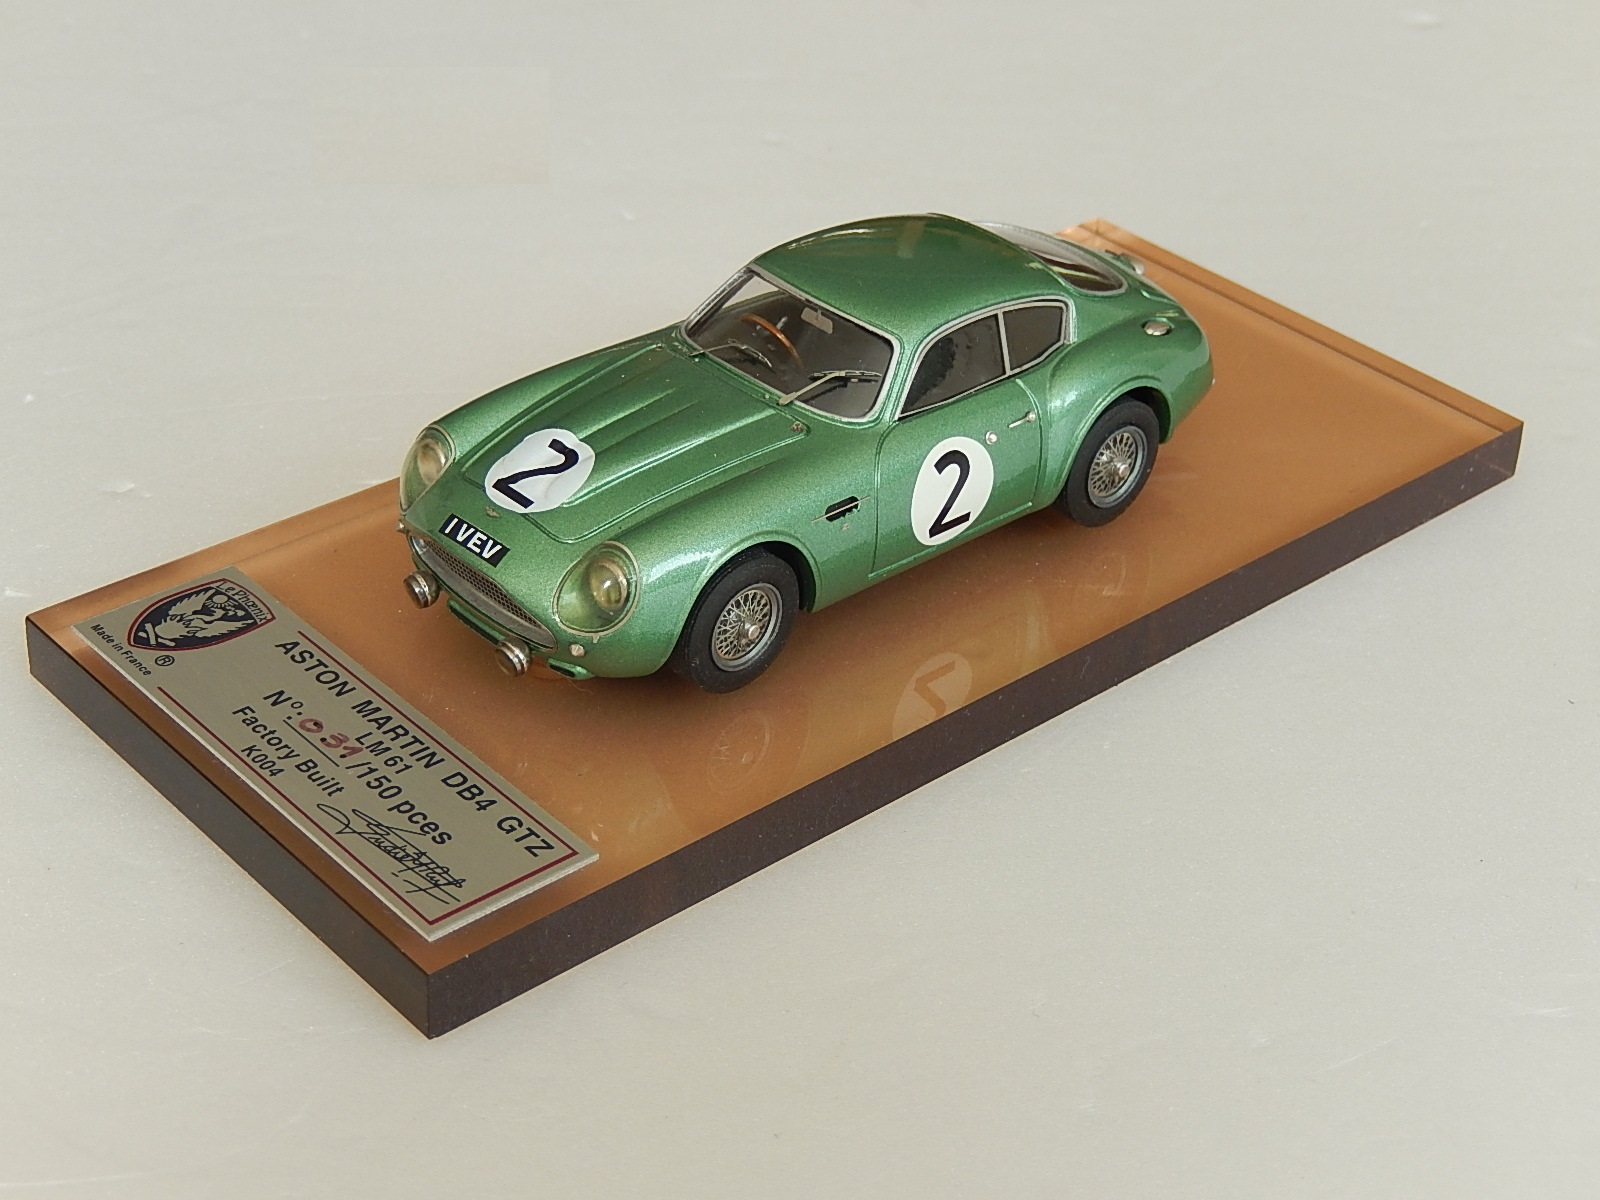 AM Ruf : Aston DB4 GT Zagato Le Mans 1961 --> SOLD